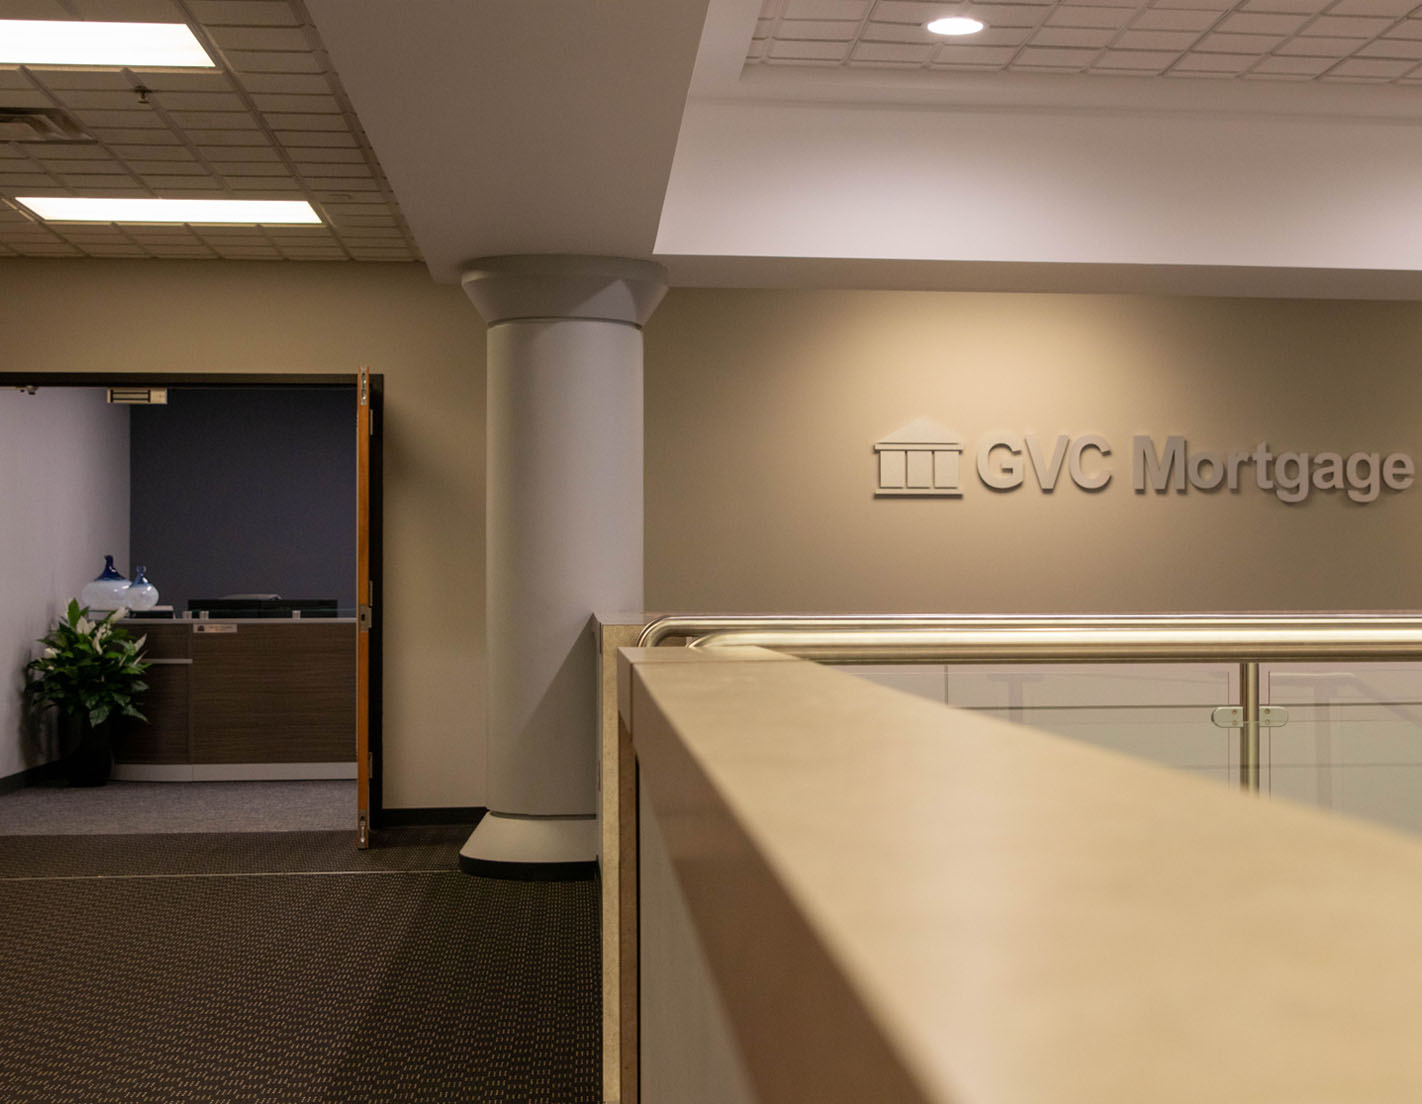 GVC Mortgage has more than 30 branch locations